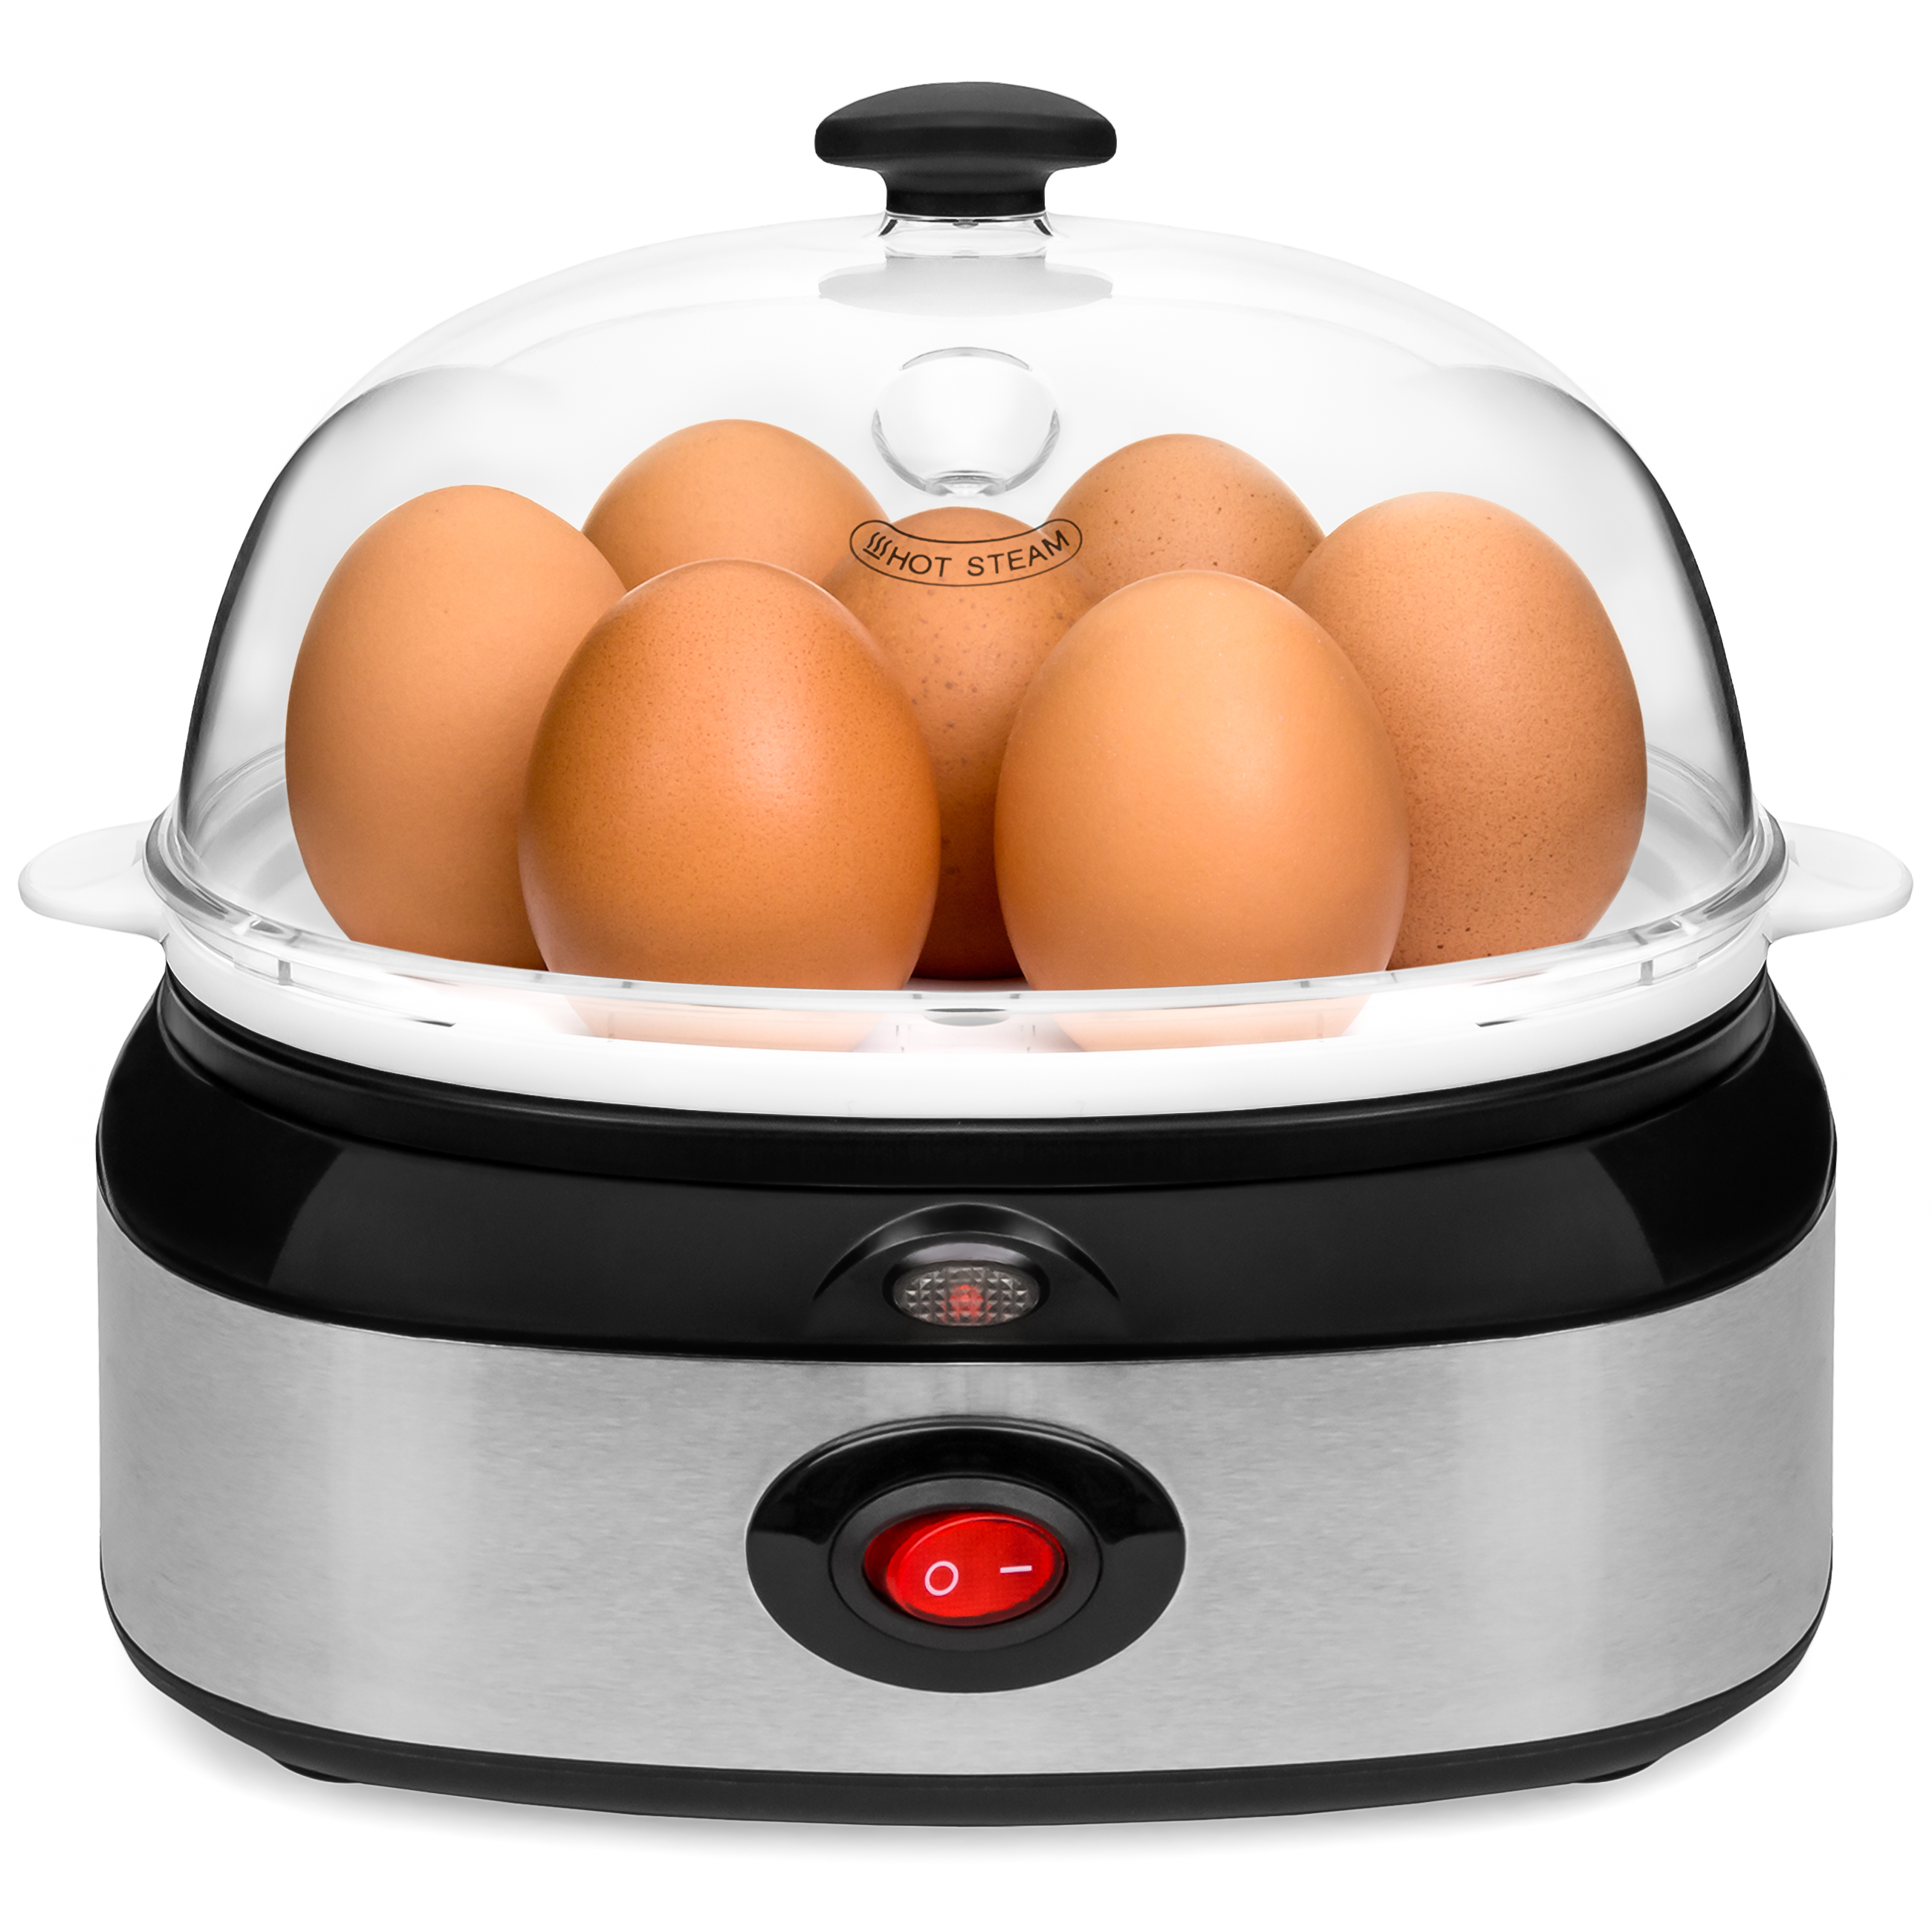 Best Choice Products Automatic Stainless Steel 7 Egg Cooker, Boiler, Poacher & Steamer w/ Auto Shut Off - Silver